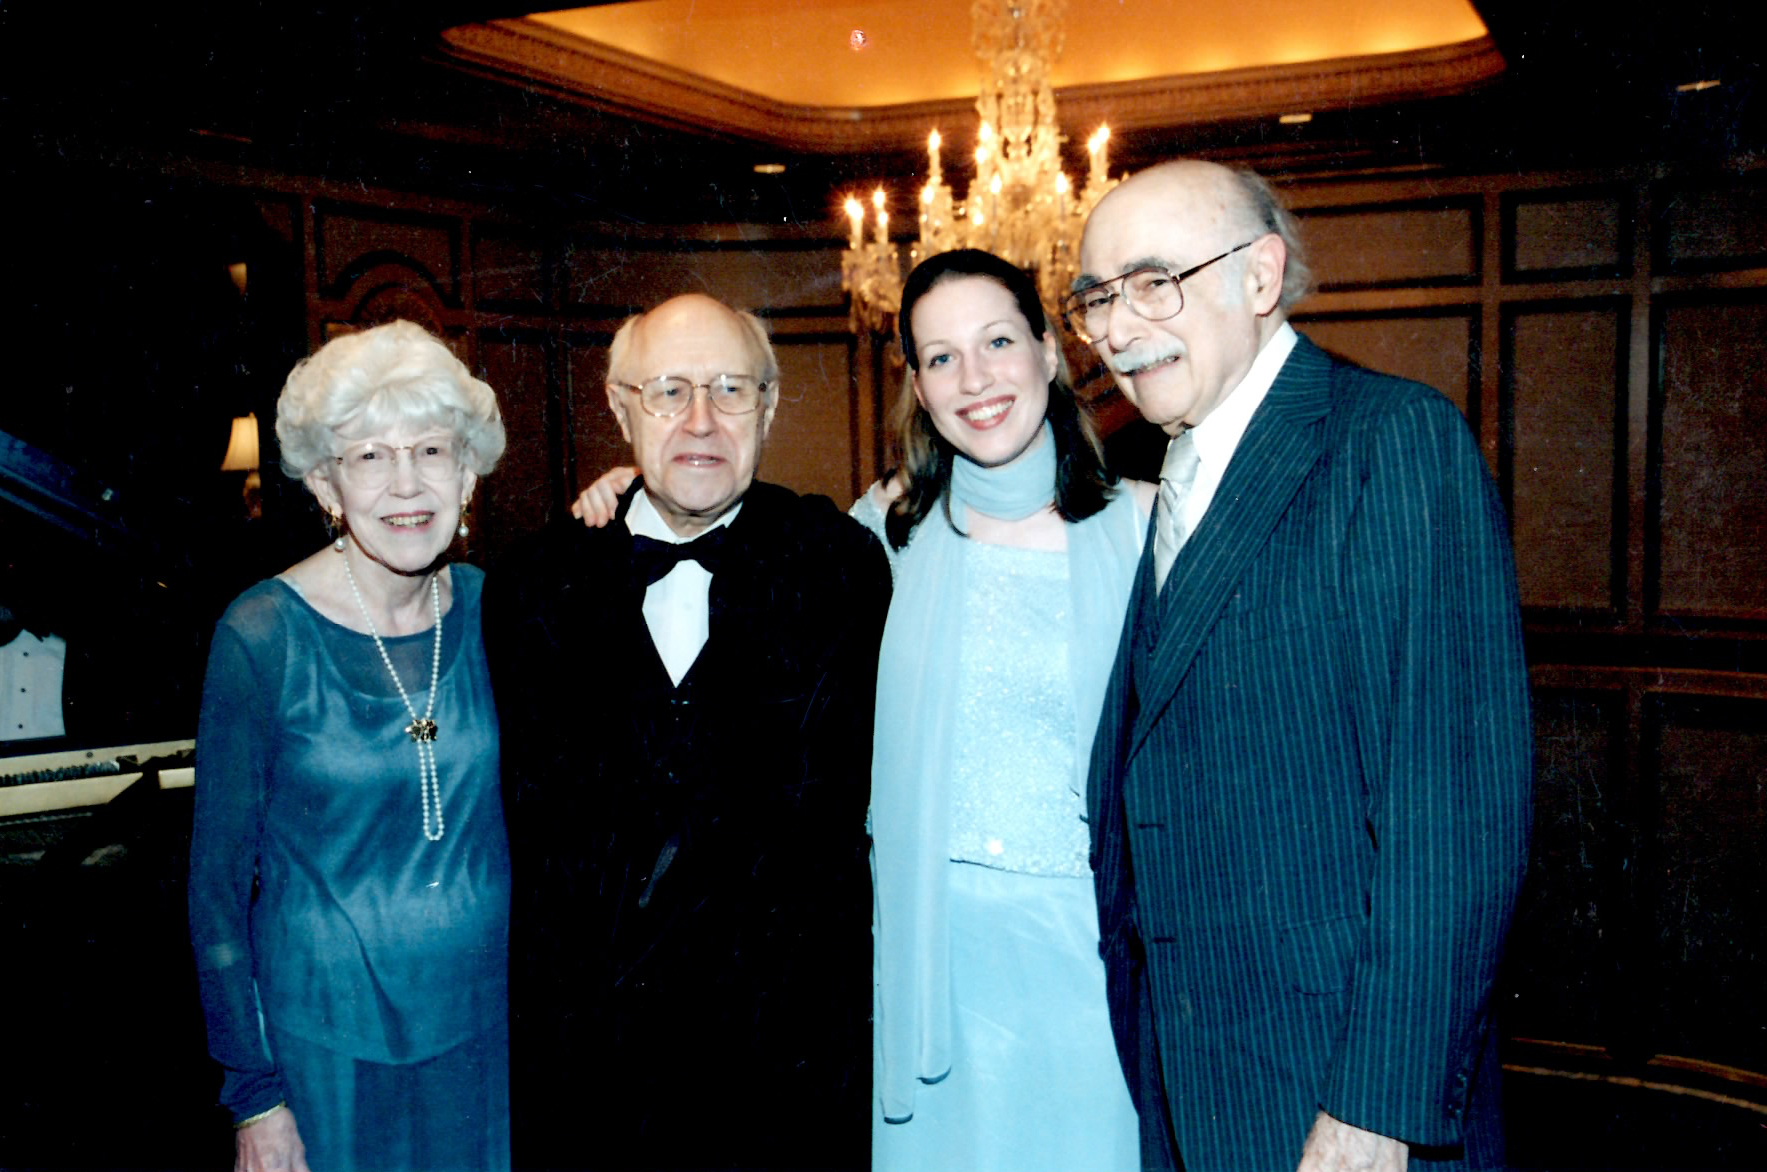 All of my teachers in one photo. From left to right: Nell Novak, Mstislav Rostropovich, myself, and Kalman Novak